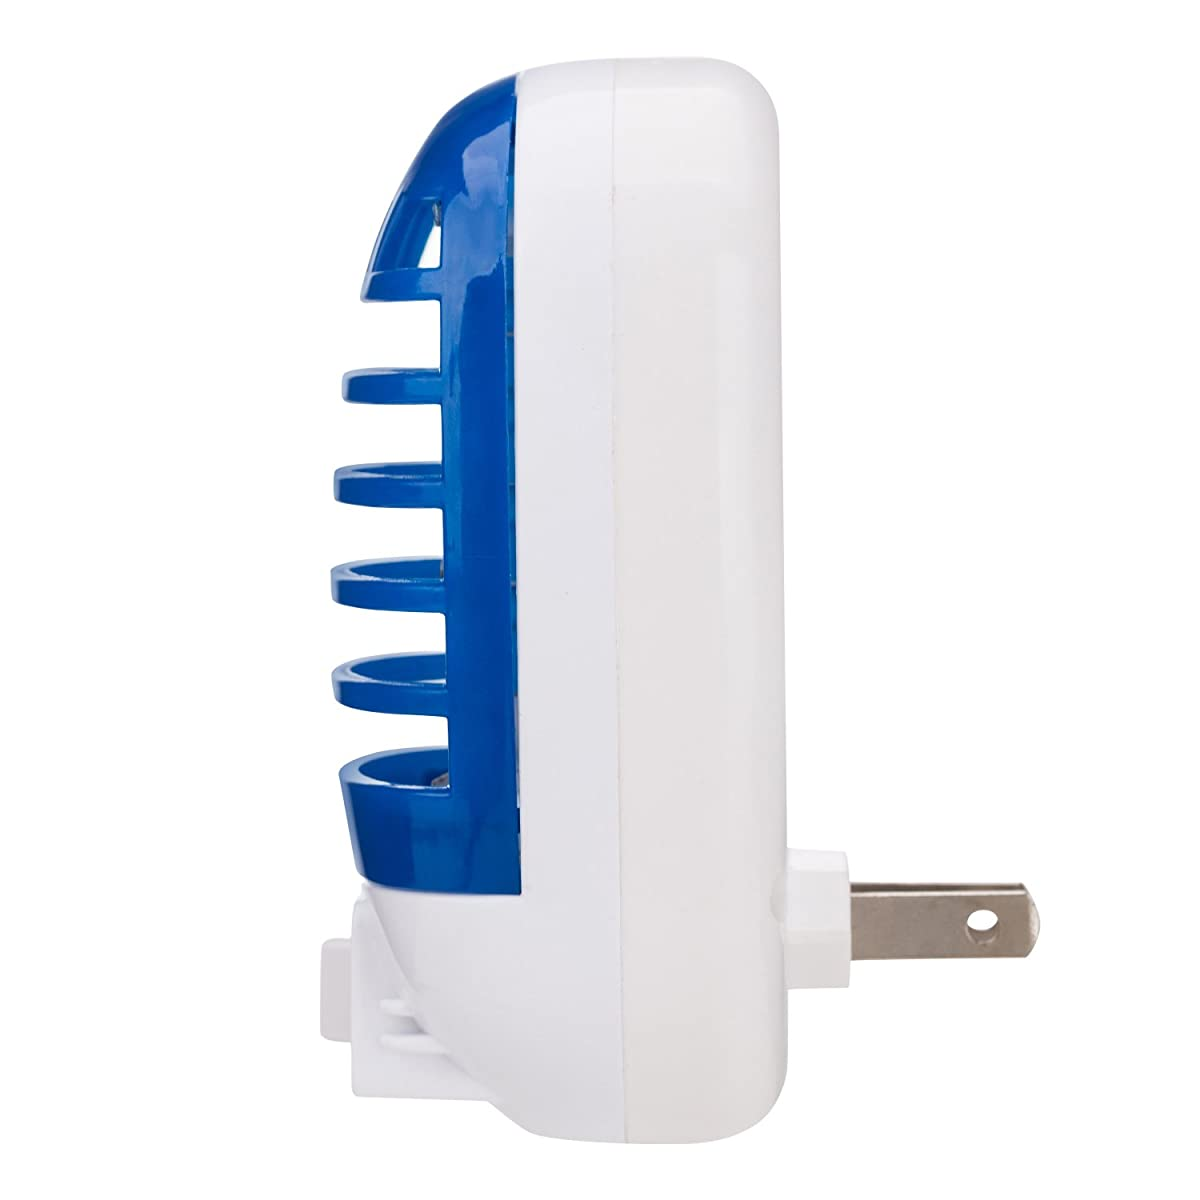 GLOUE Bug Zapper Electronic Insect Killer,Mosquito Killer Lamp,Eliminates Most Flying Pests! Night Lamp(Blue)